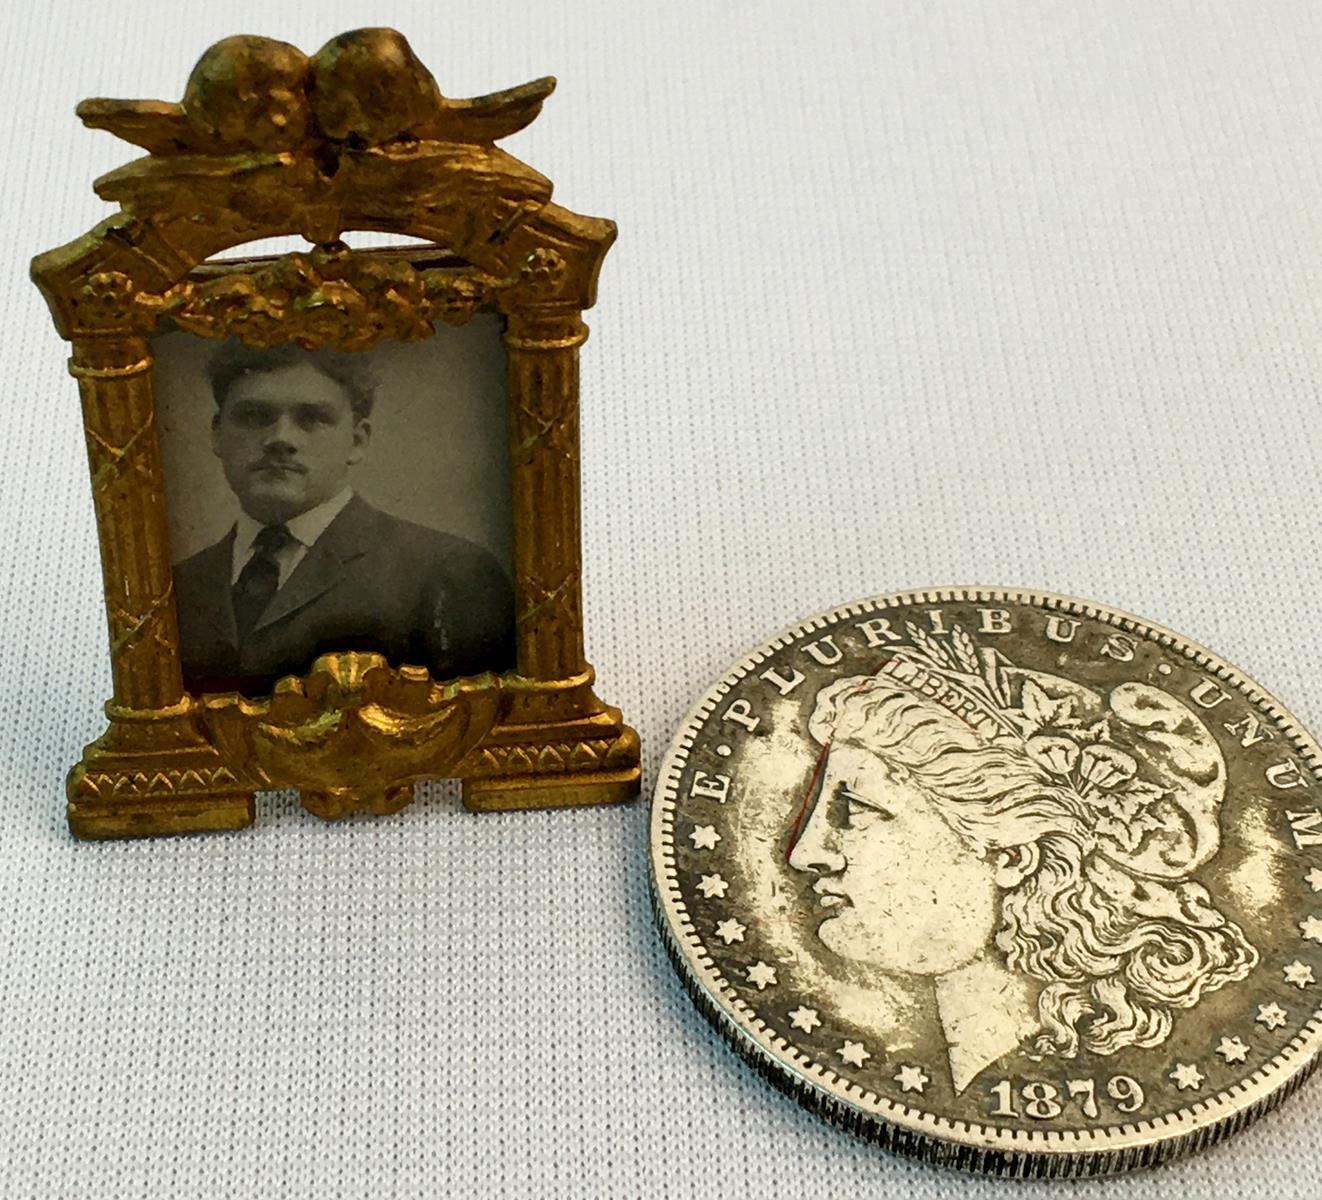 Antique 19th Century Ornate Brass Figural Framed Photograph of a Man